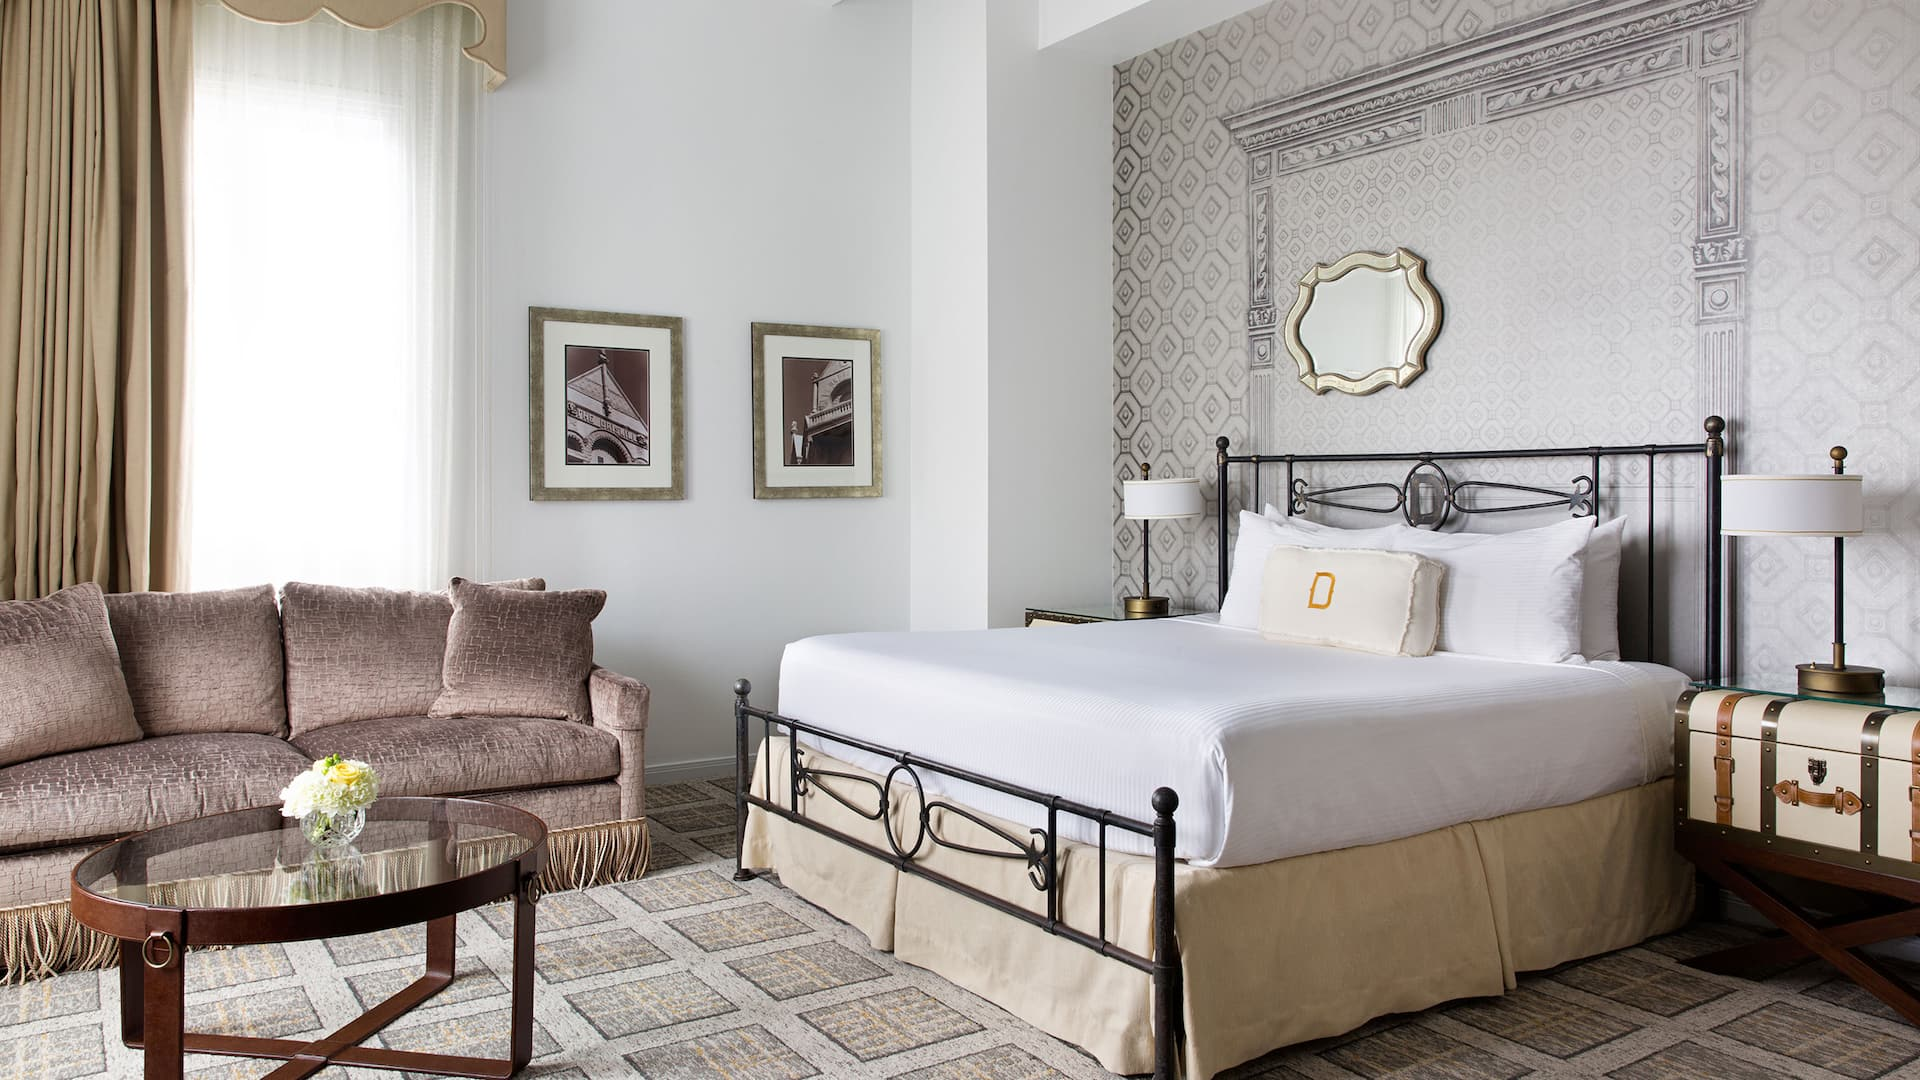 Senate Guestroom Remodeled The Driskill